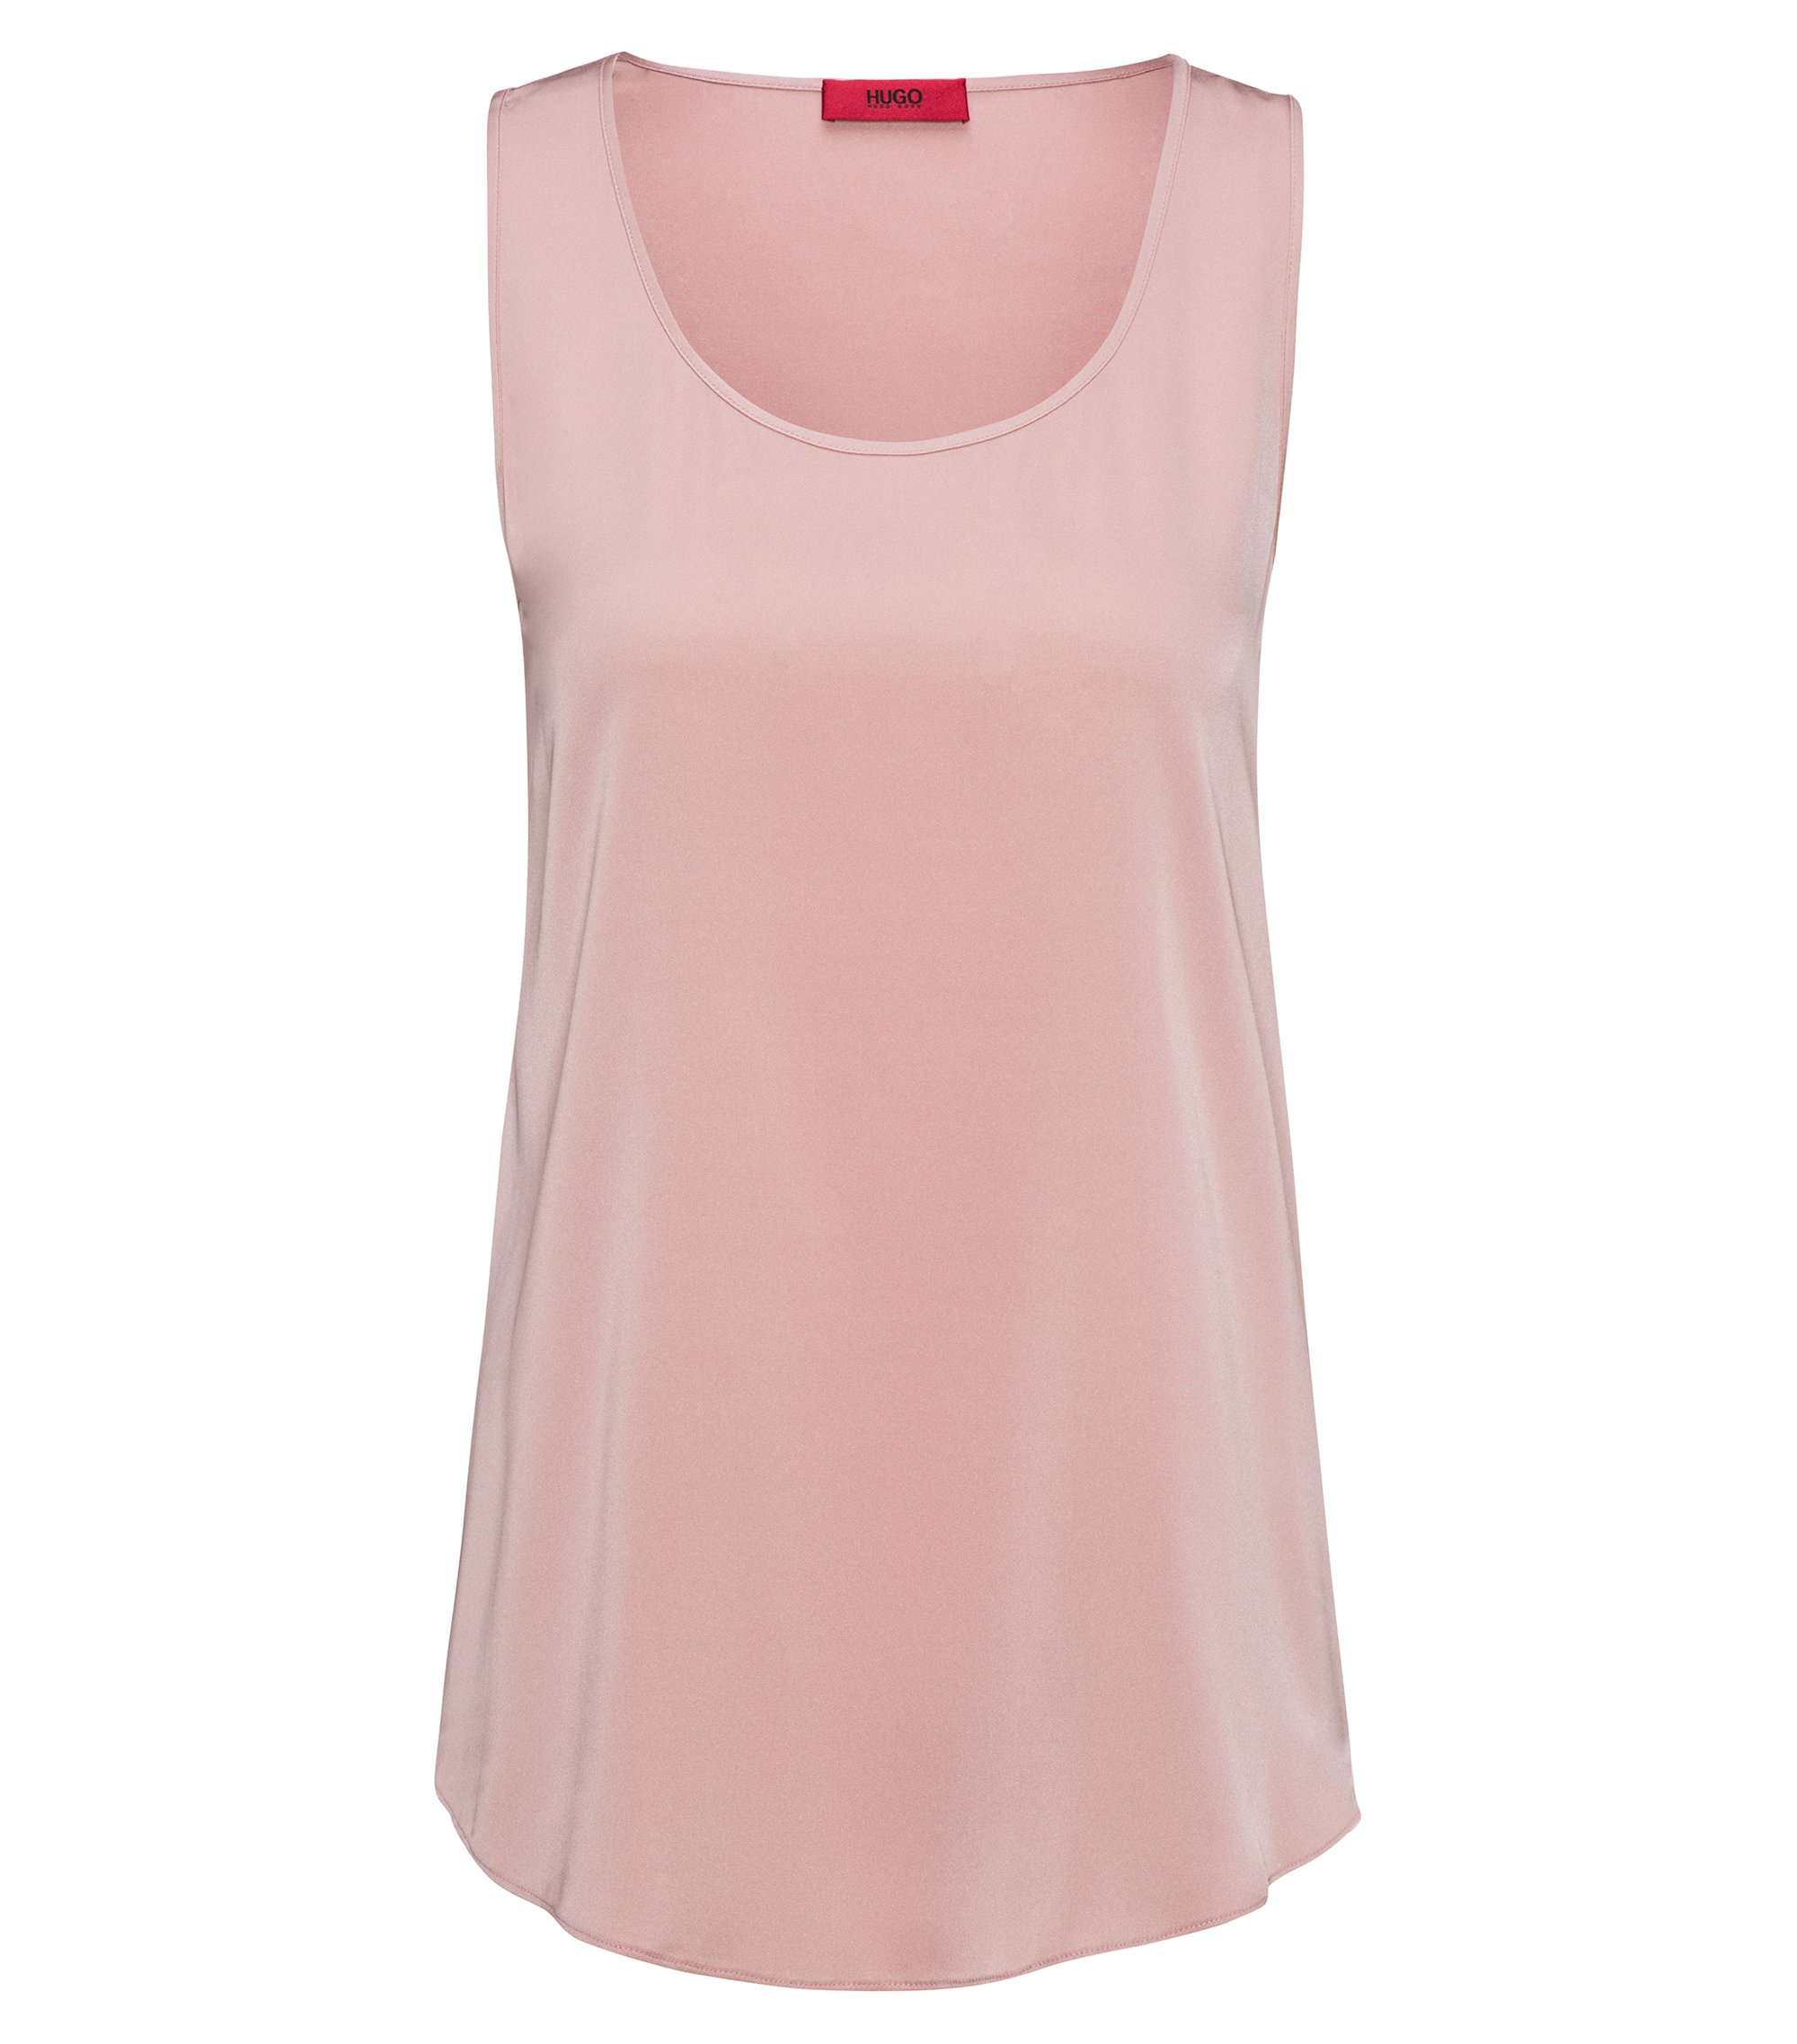 Sleeveless top in stretch silk, light pink